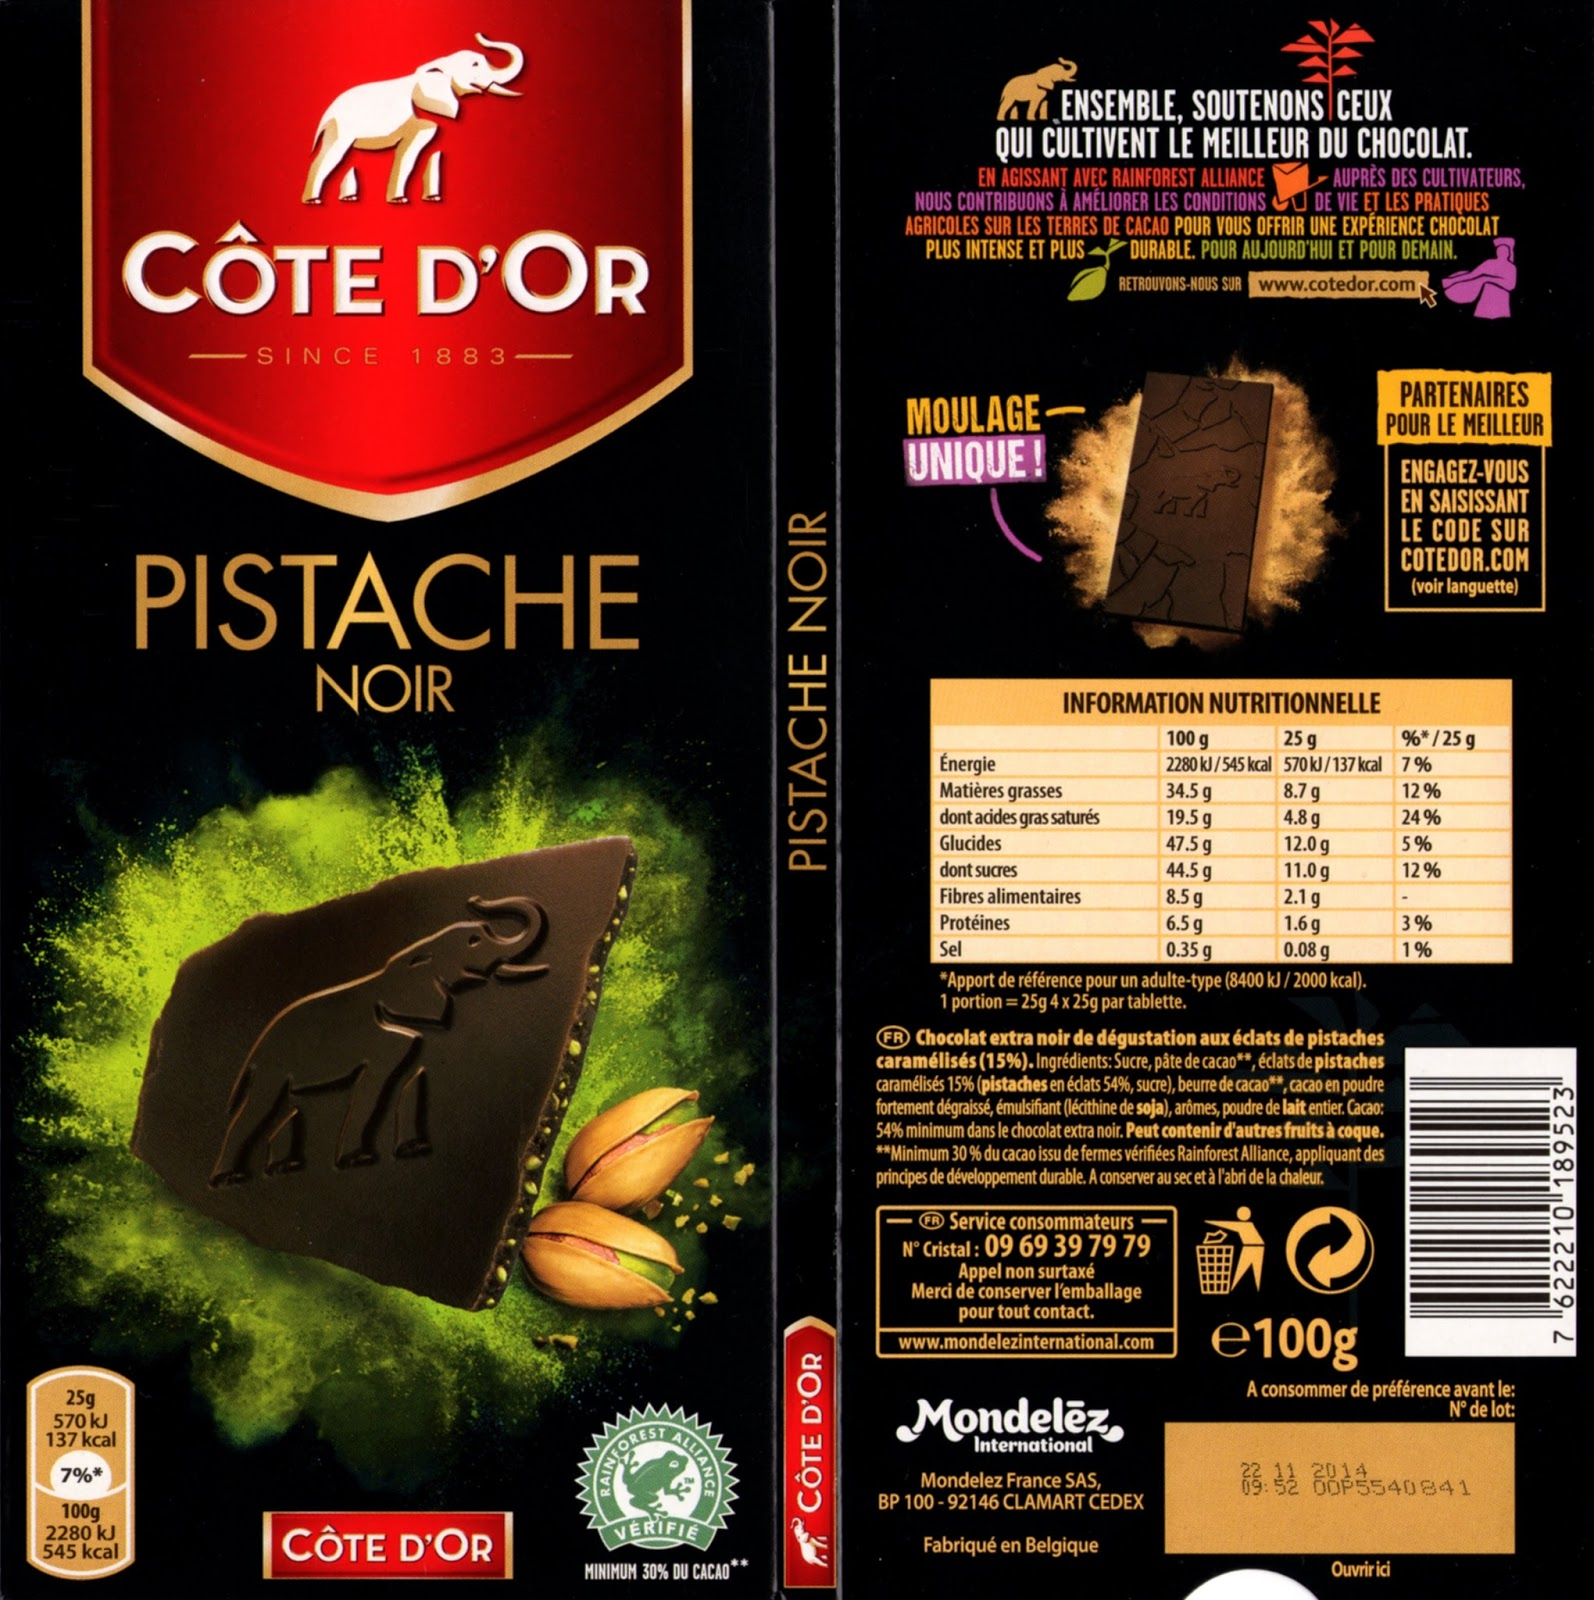 tablette de chocolat noir gourmand côte d'or pistache noir 54